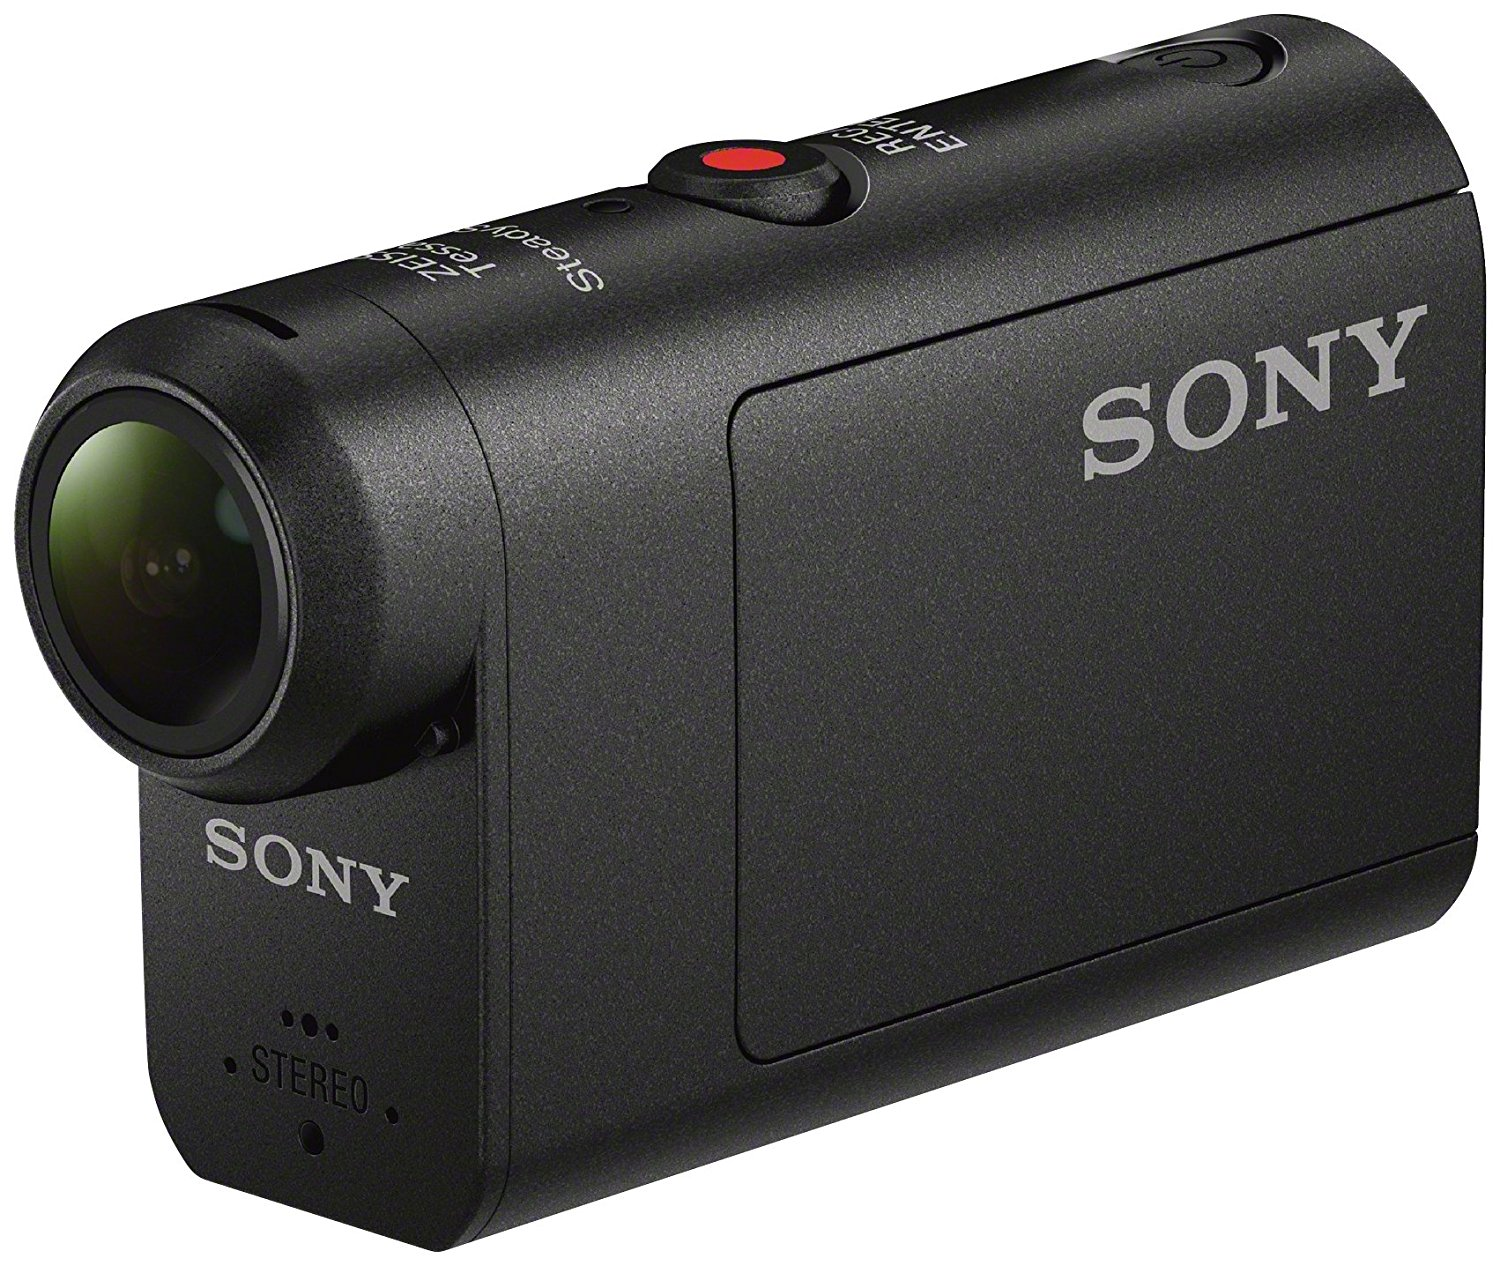 Sony HDRAS50B.CEN - Videocámara (Full HD 60p, sensor Exmor-R de 11,1Mp, Steadyshot, zoom de 3x, carcasa de 60 m) negro